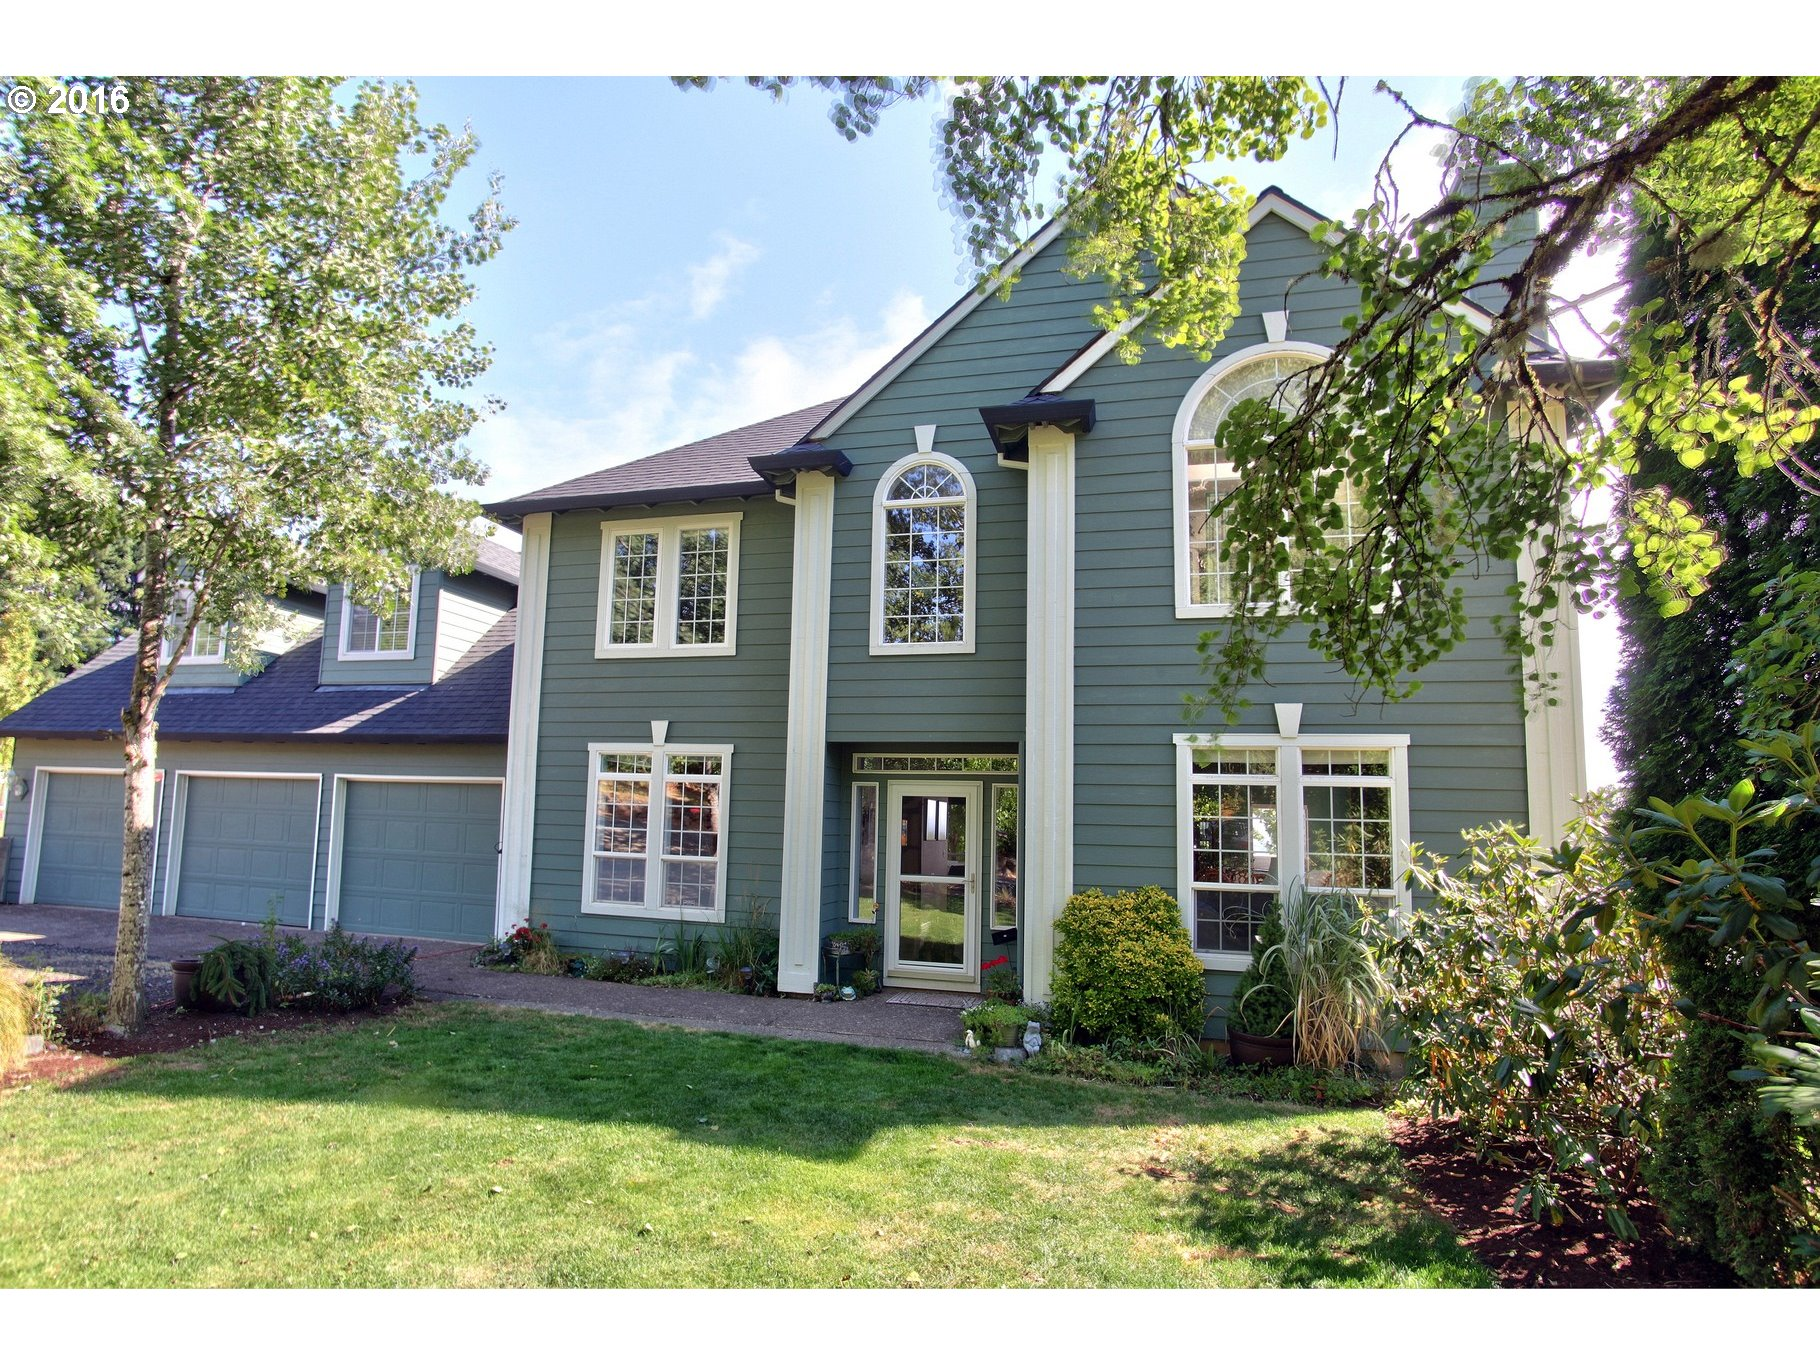 $649,900 - 4Br/3Ba -  for Sale in Bald Peak, Hillsboro